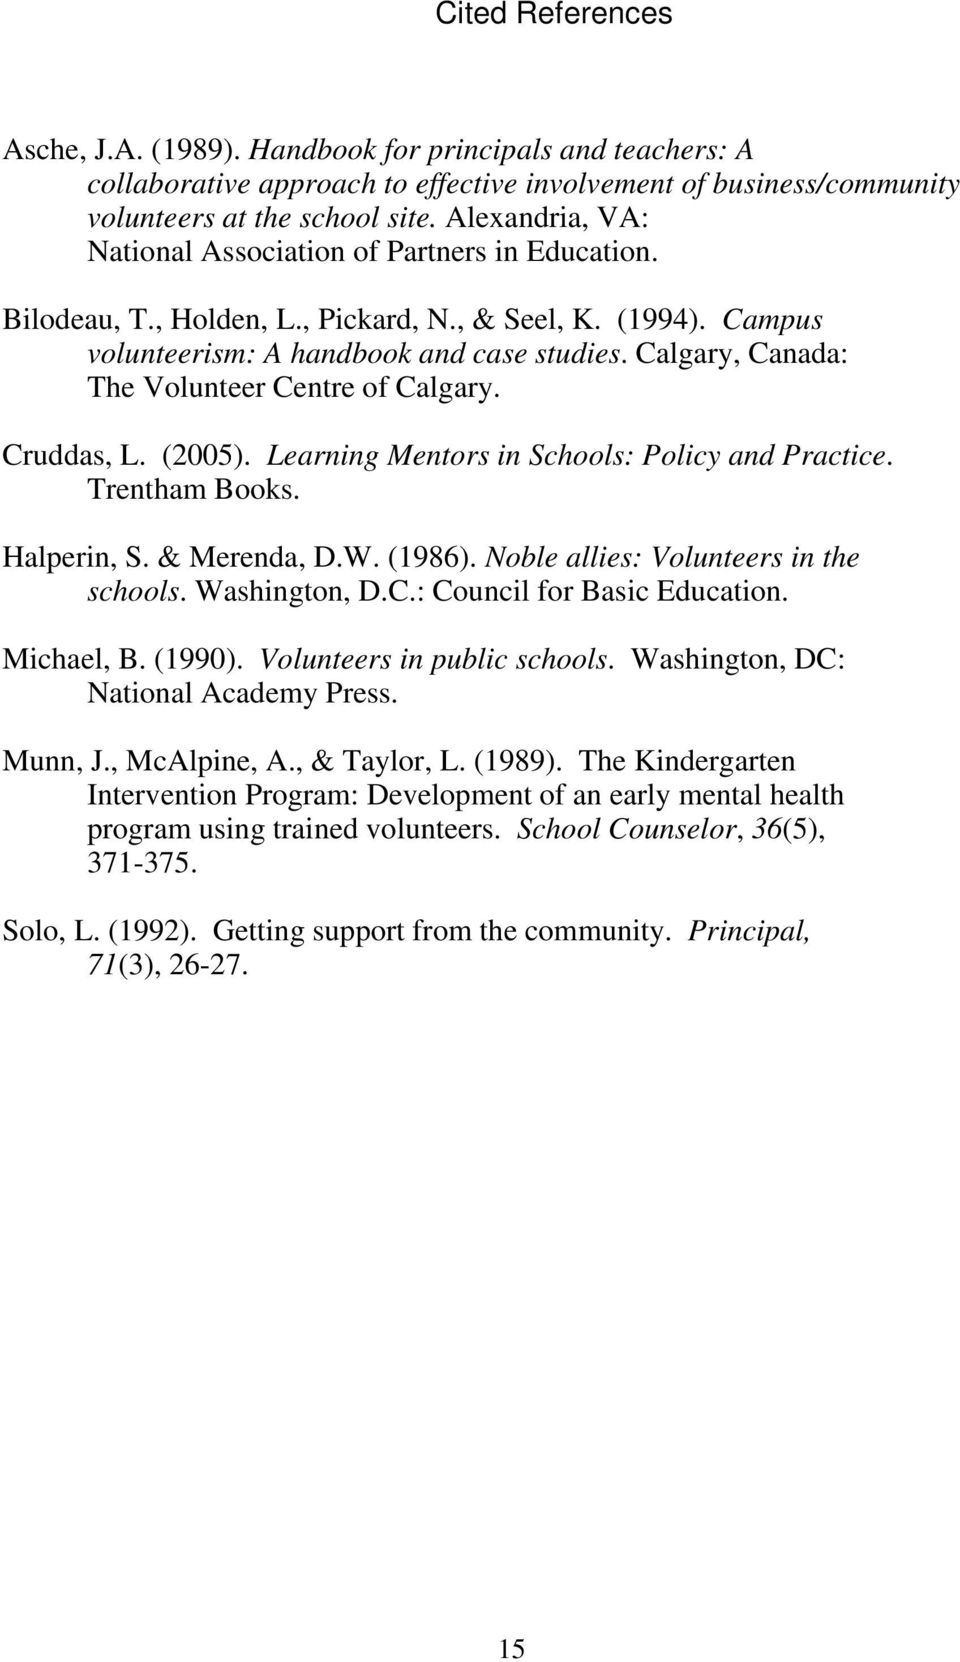 Calgary, Canada: The Volunteer Centre of Calgary. Cruddas, L. (2005). Learning Mentors in Schools: Policy and Practice. Trentham Books. Halperin, S. & Merenda, D.W. (1986).